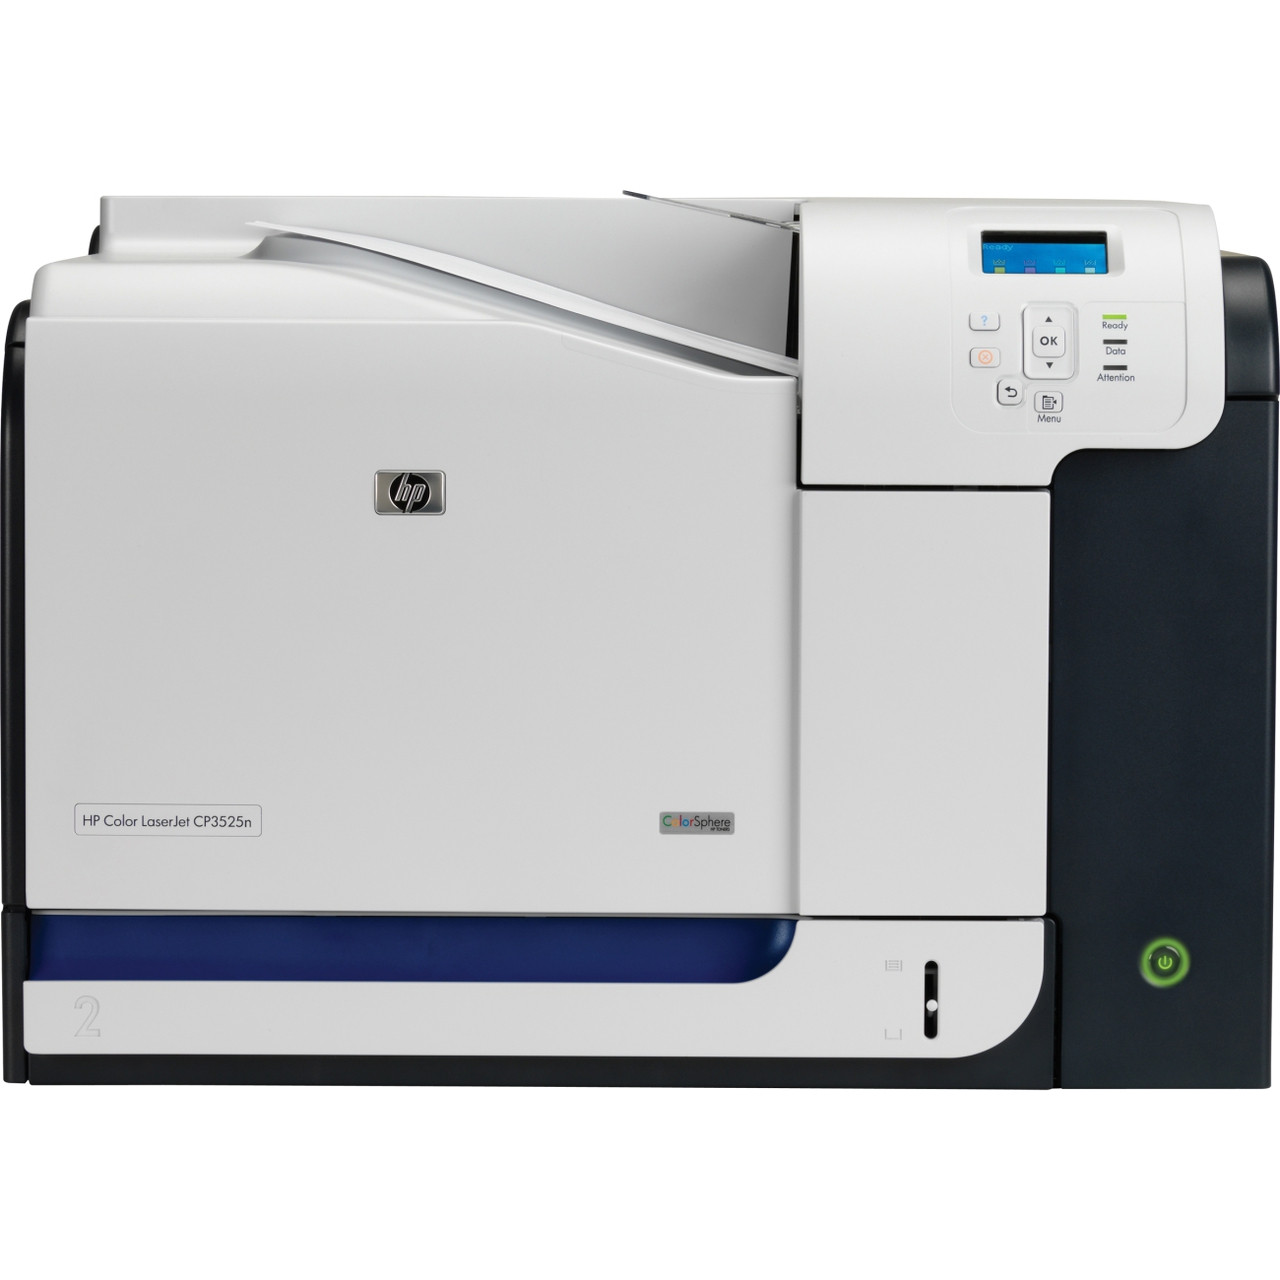 HP Color LaserJet CP3525n - CC469A - HP Laser Printer for sale